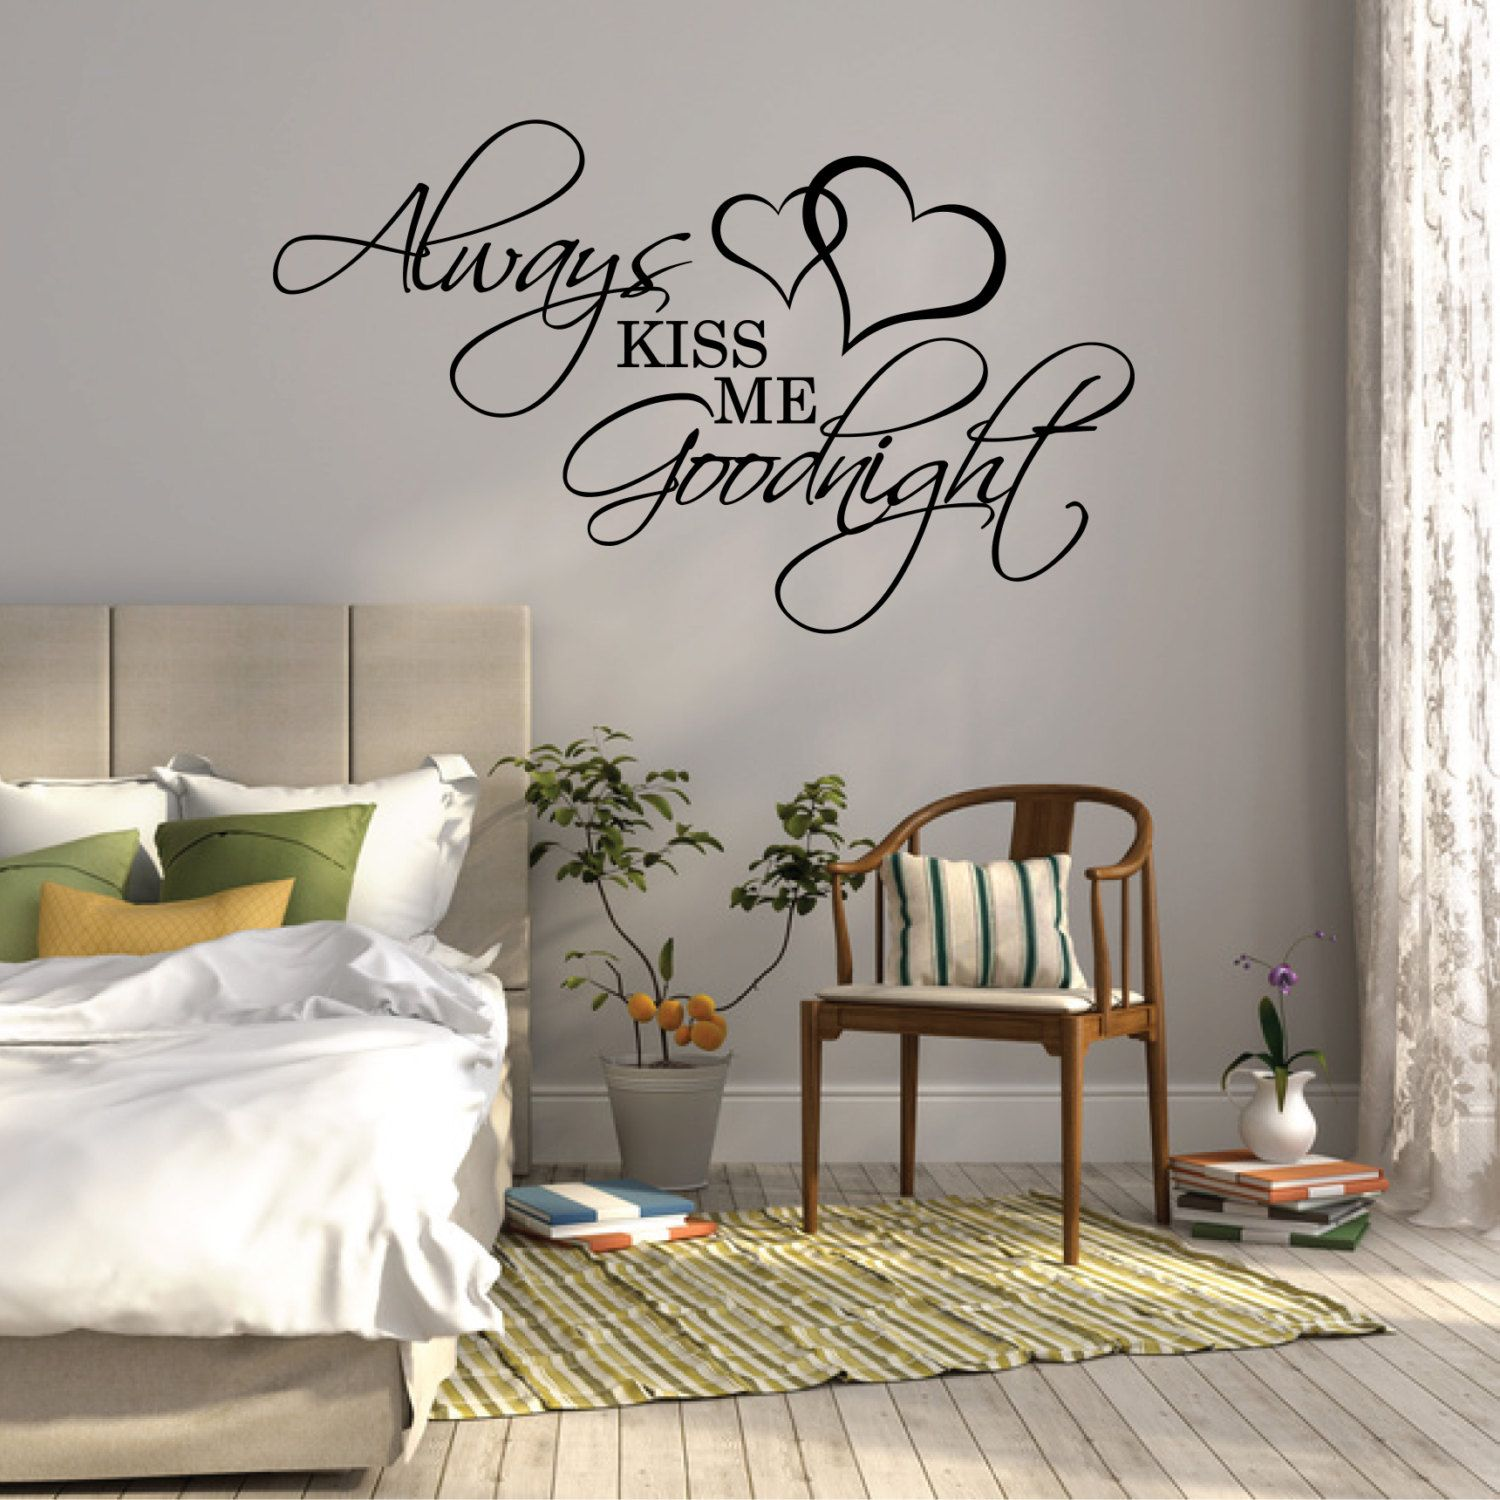 Wall sticker quote always kiss me goodnight over bed for Bedroom ideas above bed